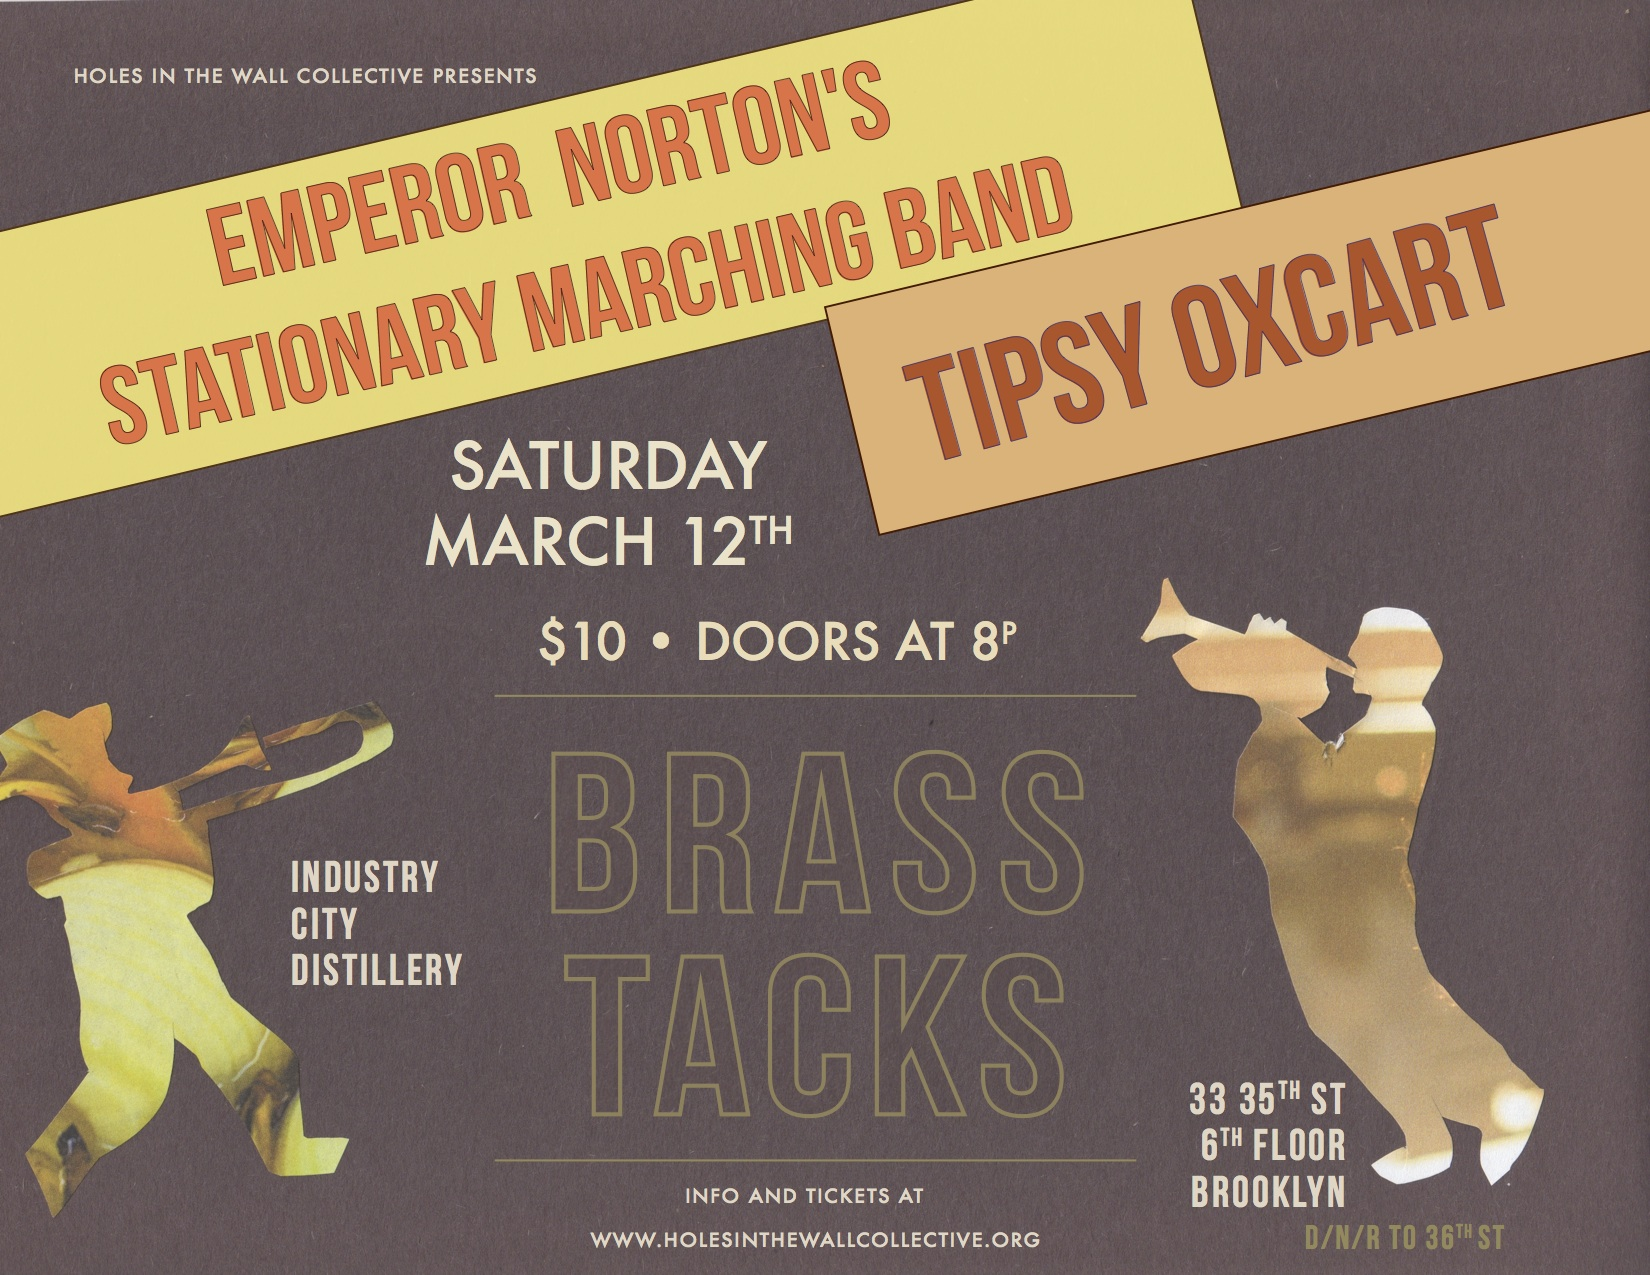 Tipsy Oxcart & Emperor Norton's Stationary Marching Band